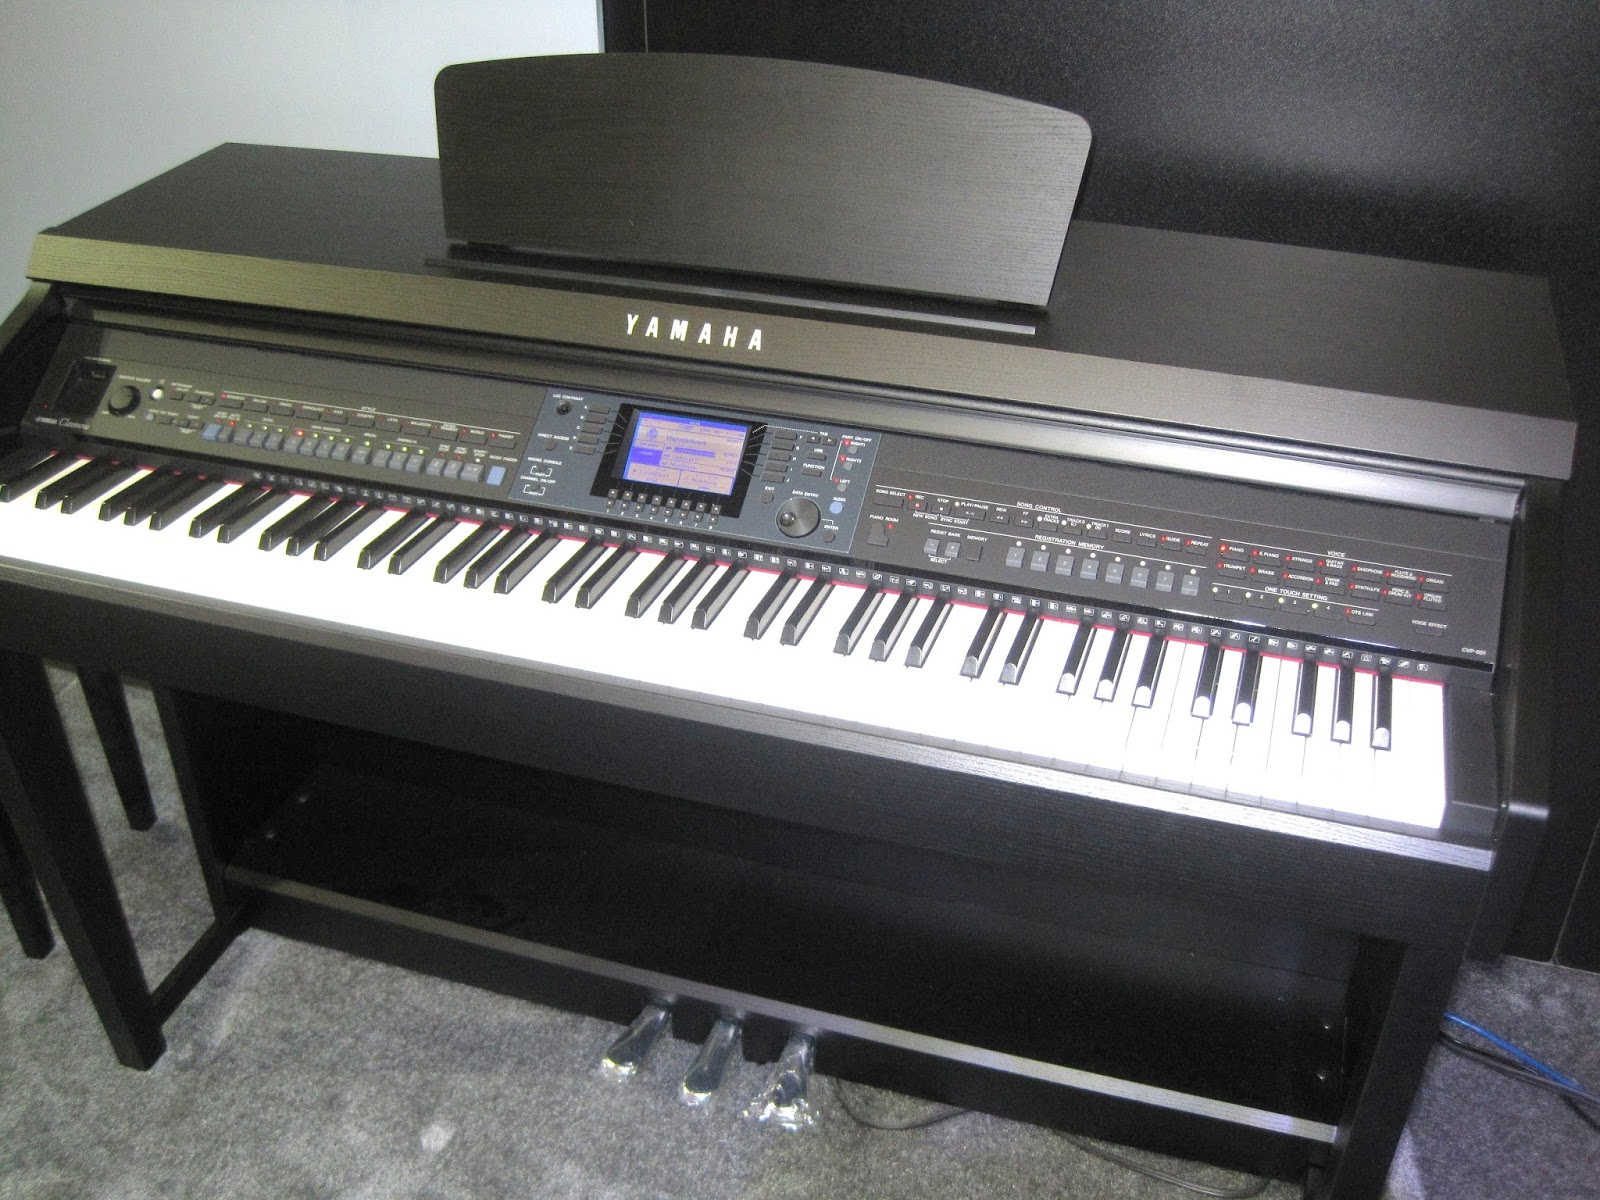 azpianonews review casio px780 digital piano a best buy for a low price digital piano reviews. Black Bedroom Furniture Sets. Home Design Ideas